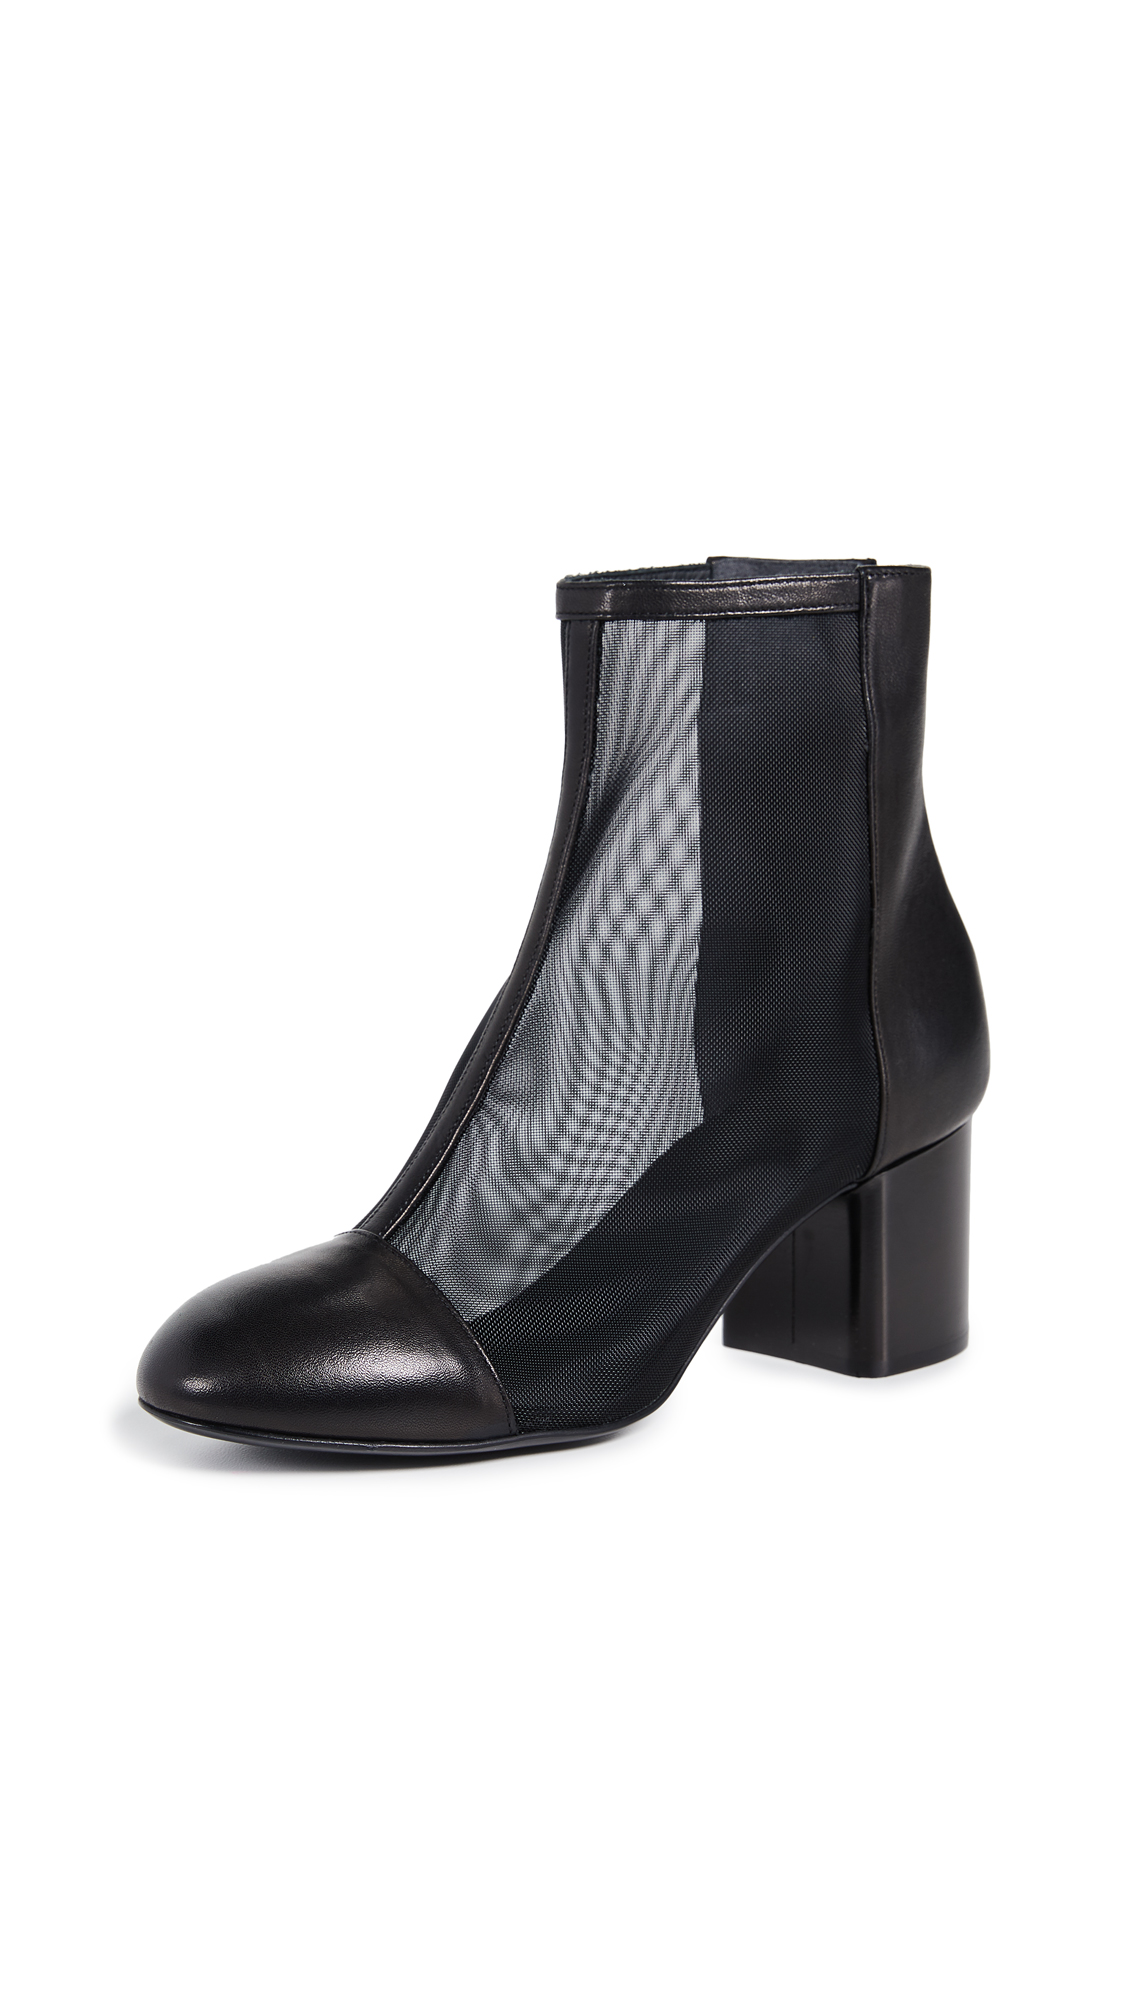 Rag & Bone Drea Mesh Boots In Black